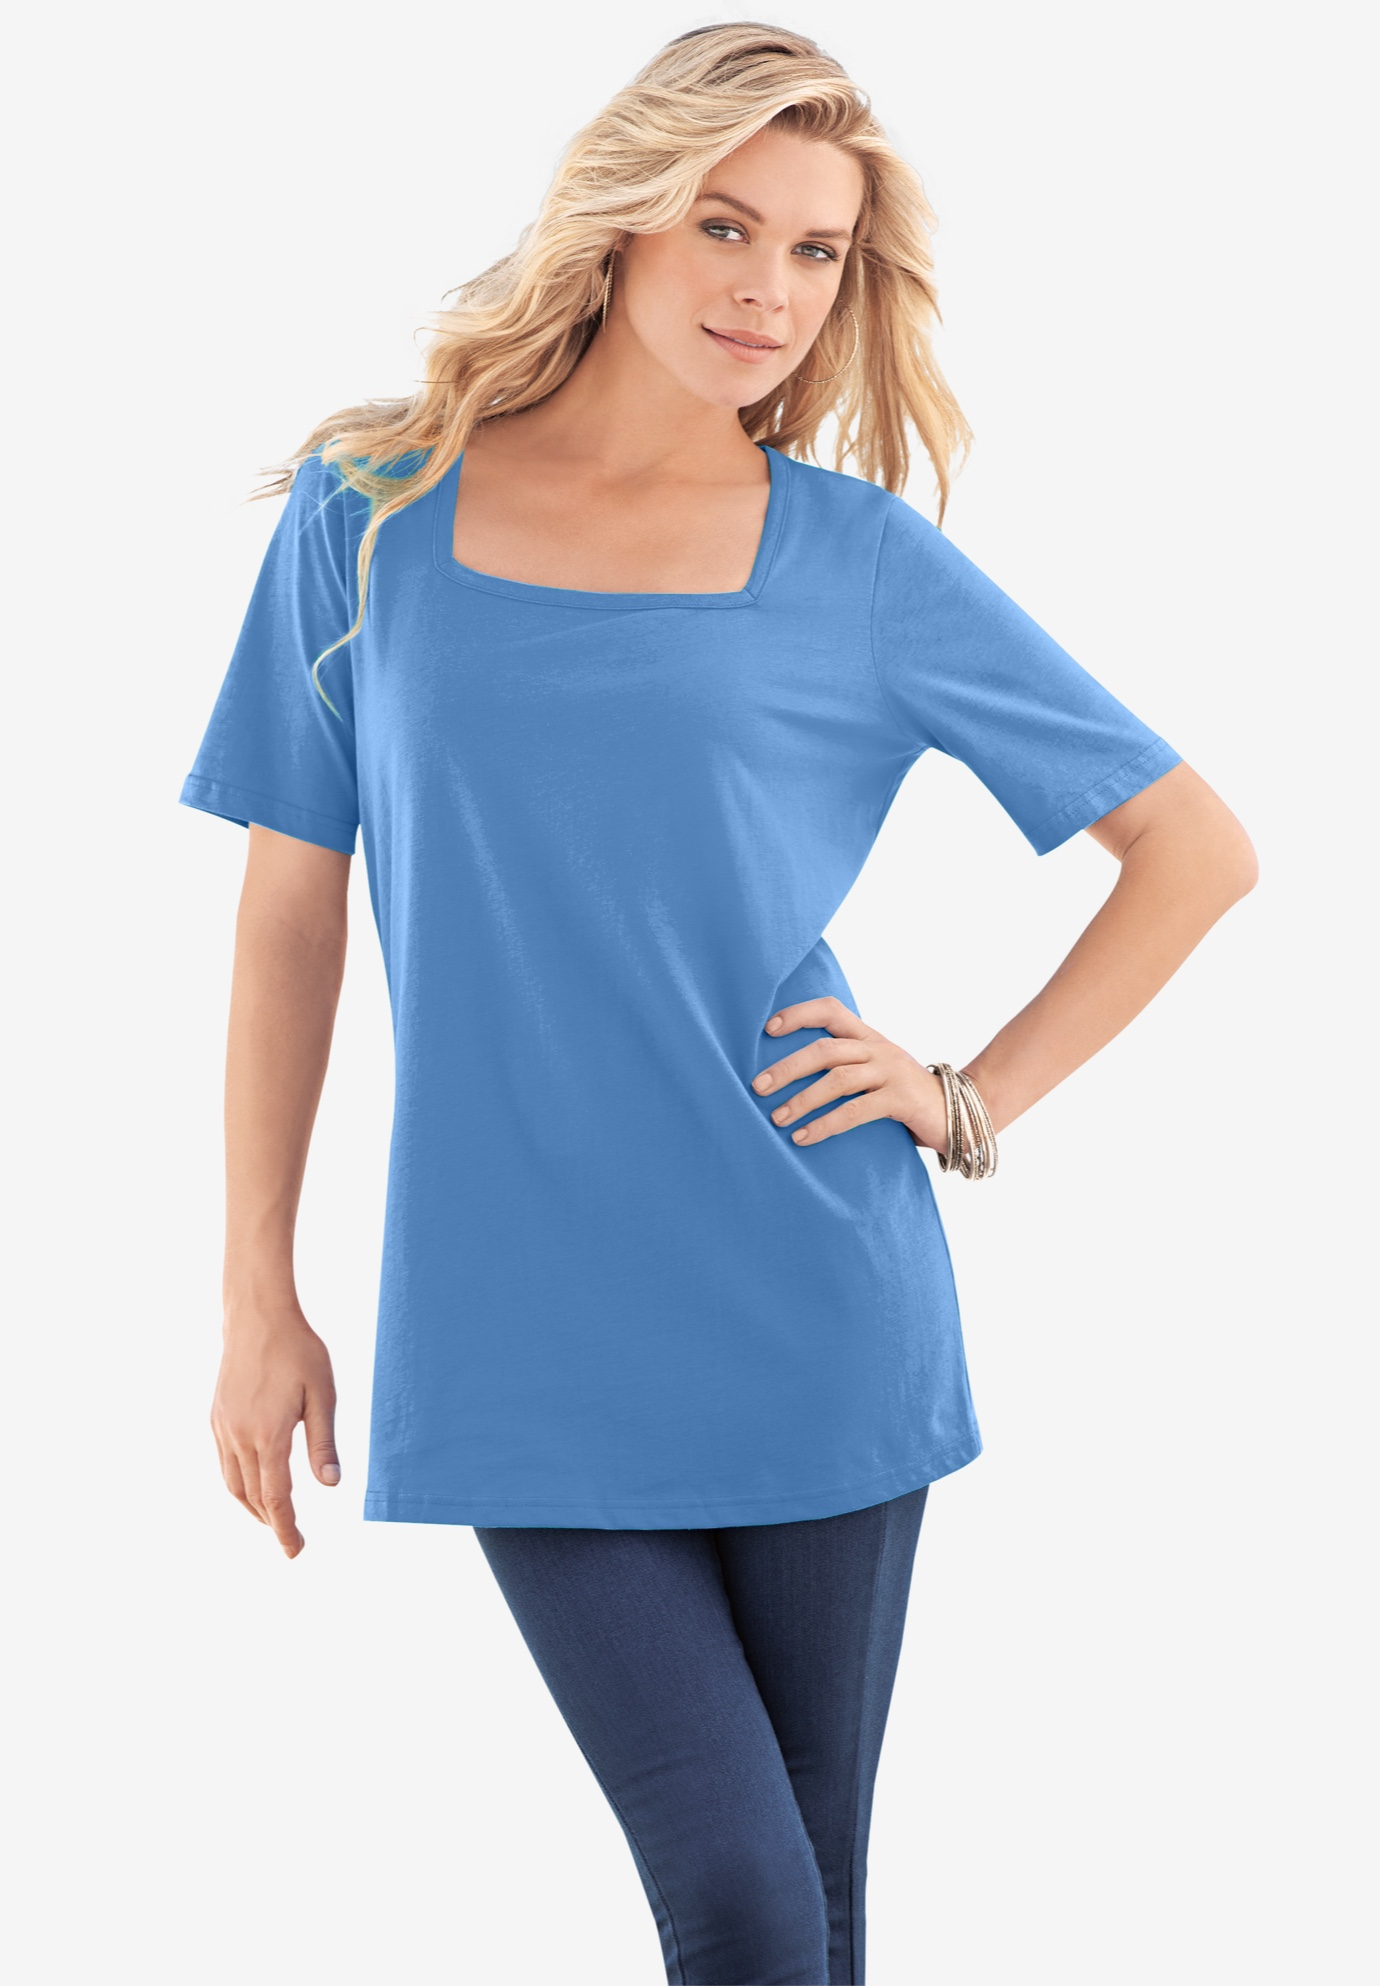 Short-Sleeve Squareneck Ultimate Tee,